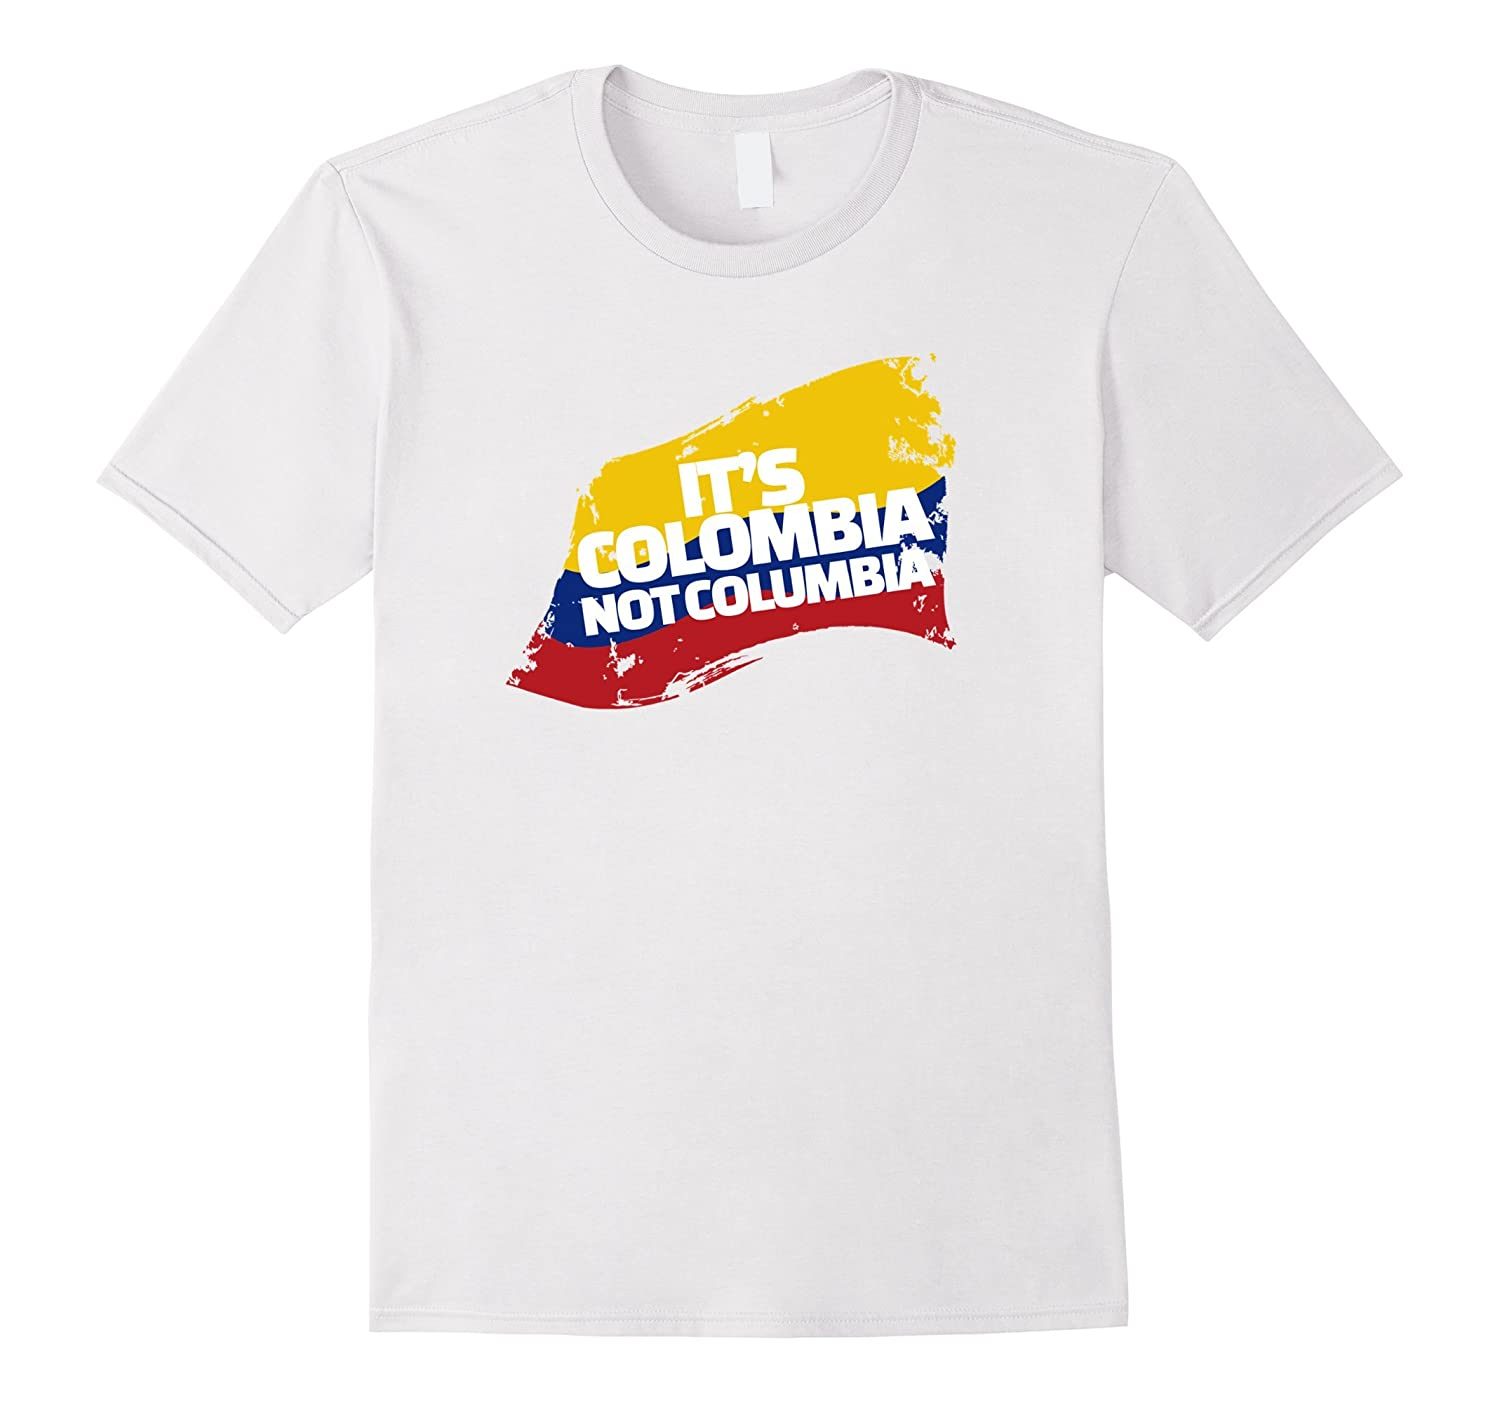 975f543ee Amazon.com  Columbia Shirt - It s Colombia! Not Columbia! - Funny Shirt   Clothing